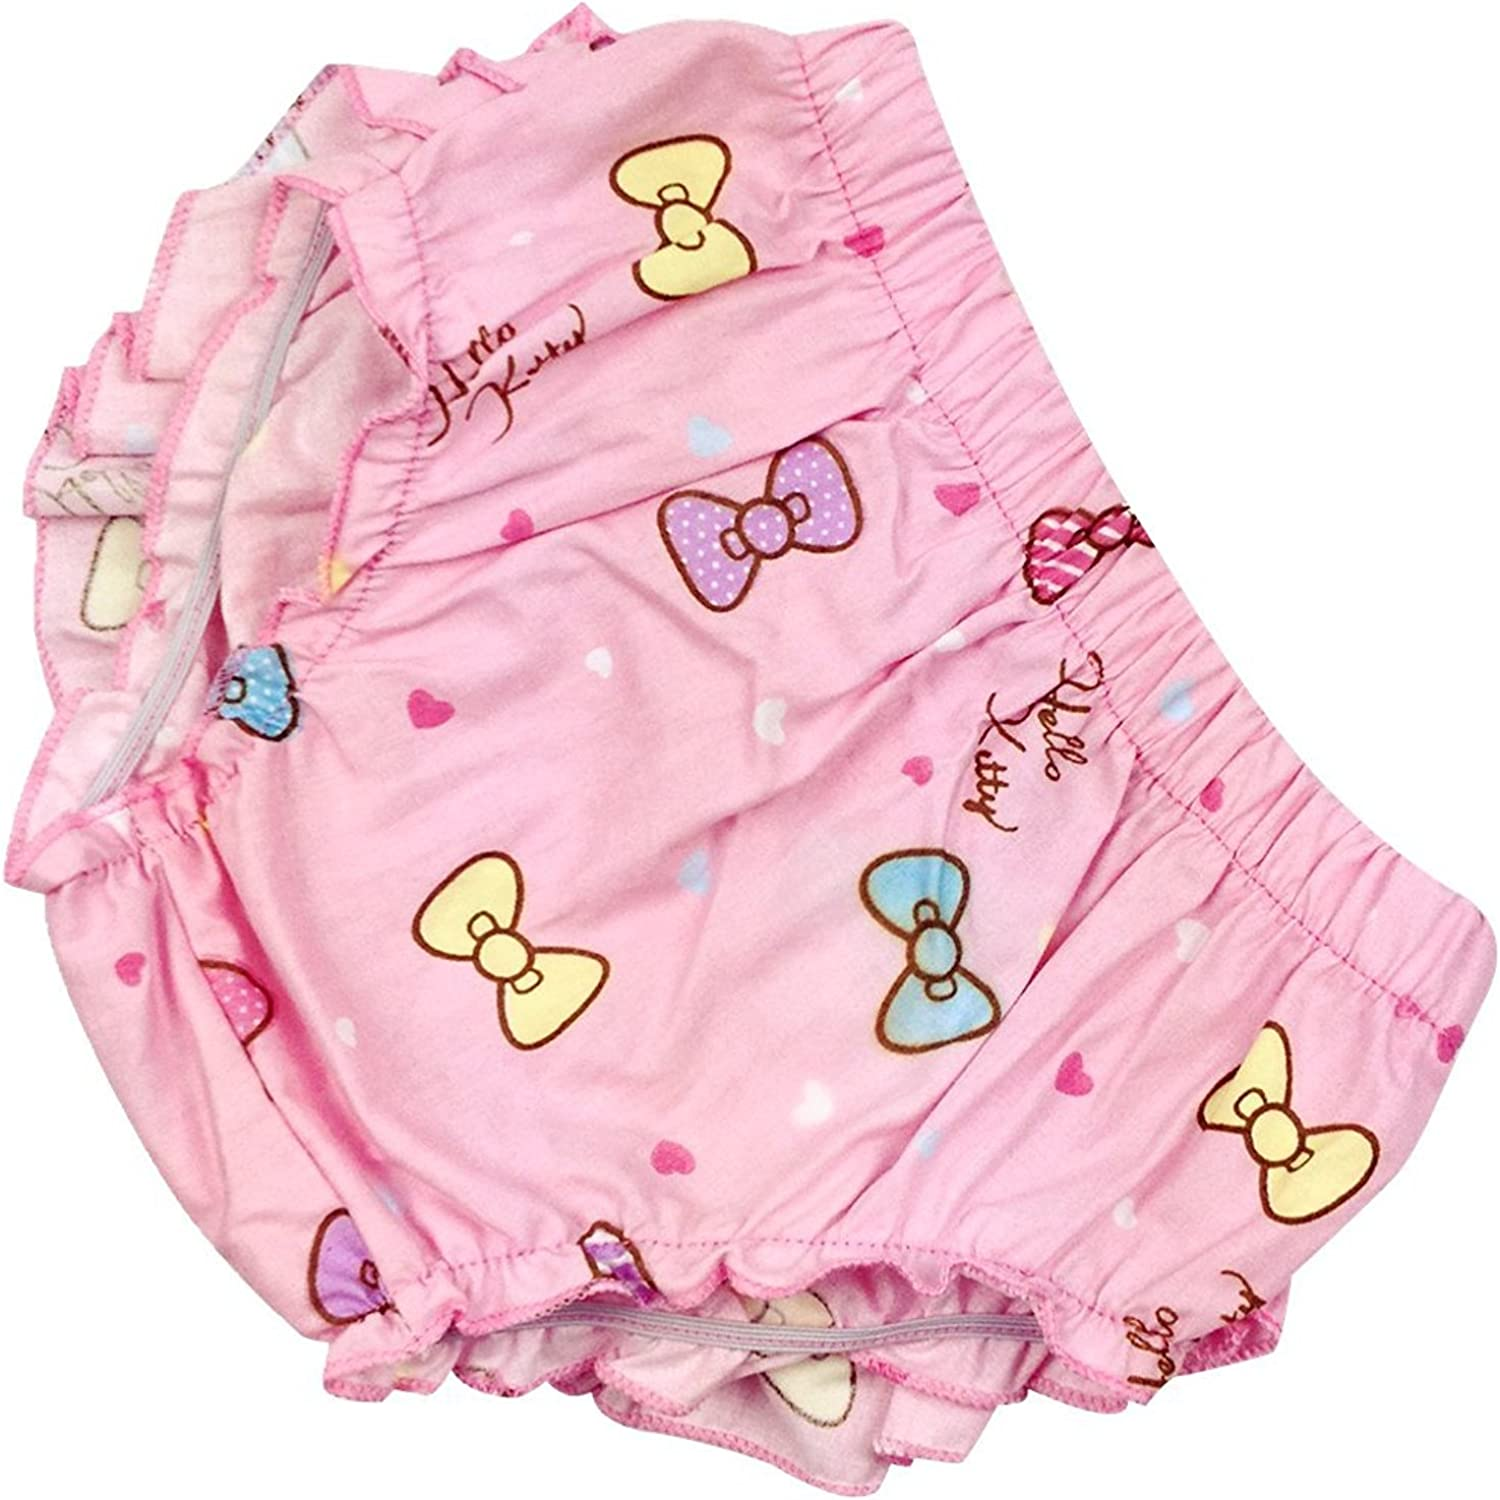 Jojobaby Baby Girls 2 Piece Pompon Ruffle Bloomers Diaper Covers with Headband Set 100/% Cotton